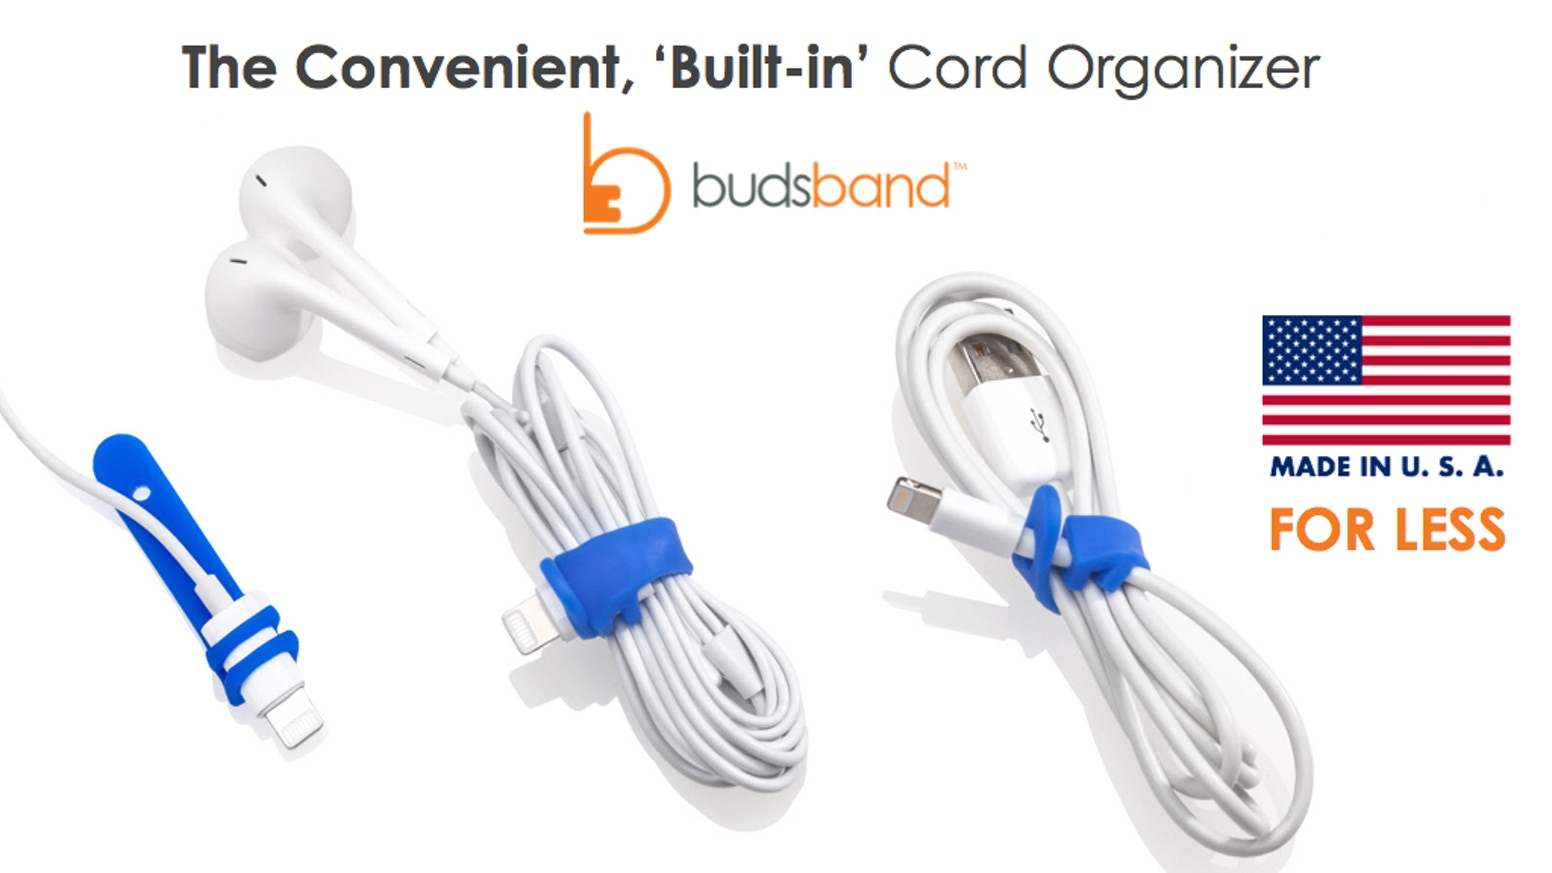 Budsband 2.0 - The Convenient Cord Organizer - Made in USA